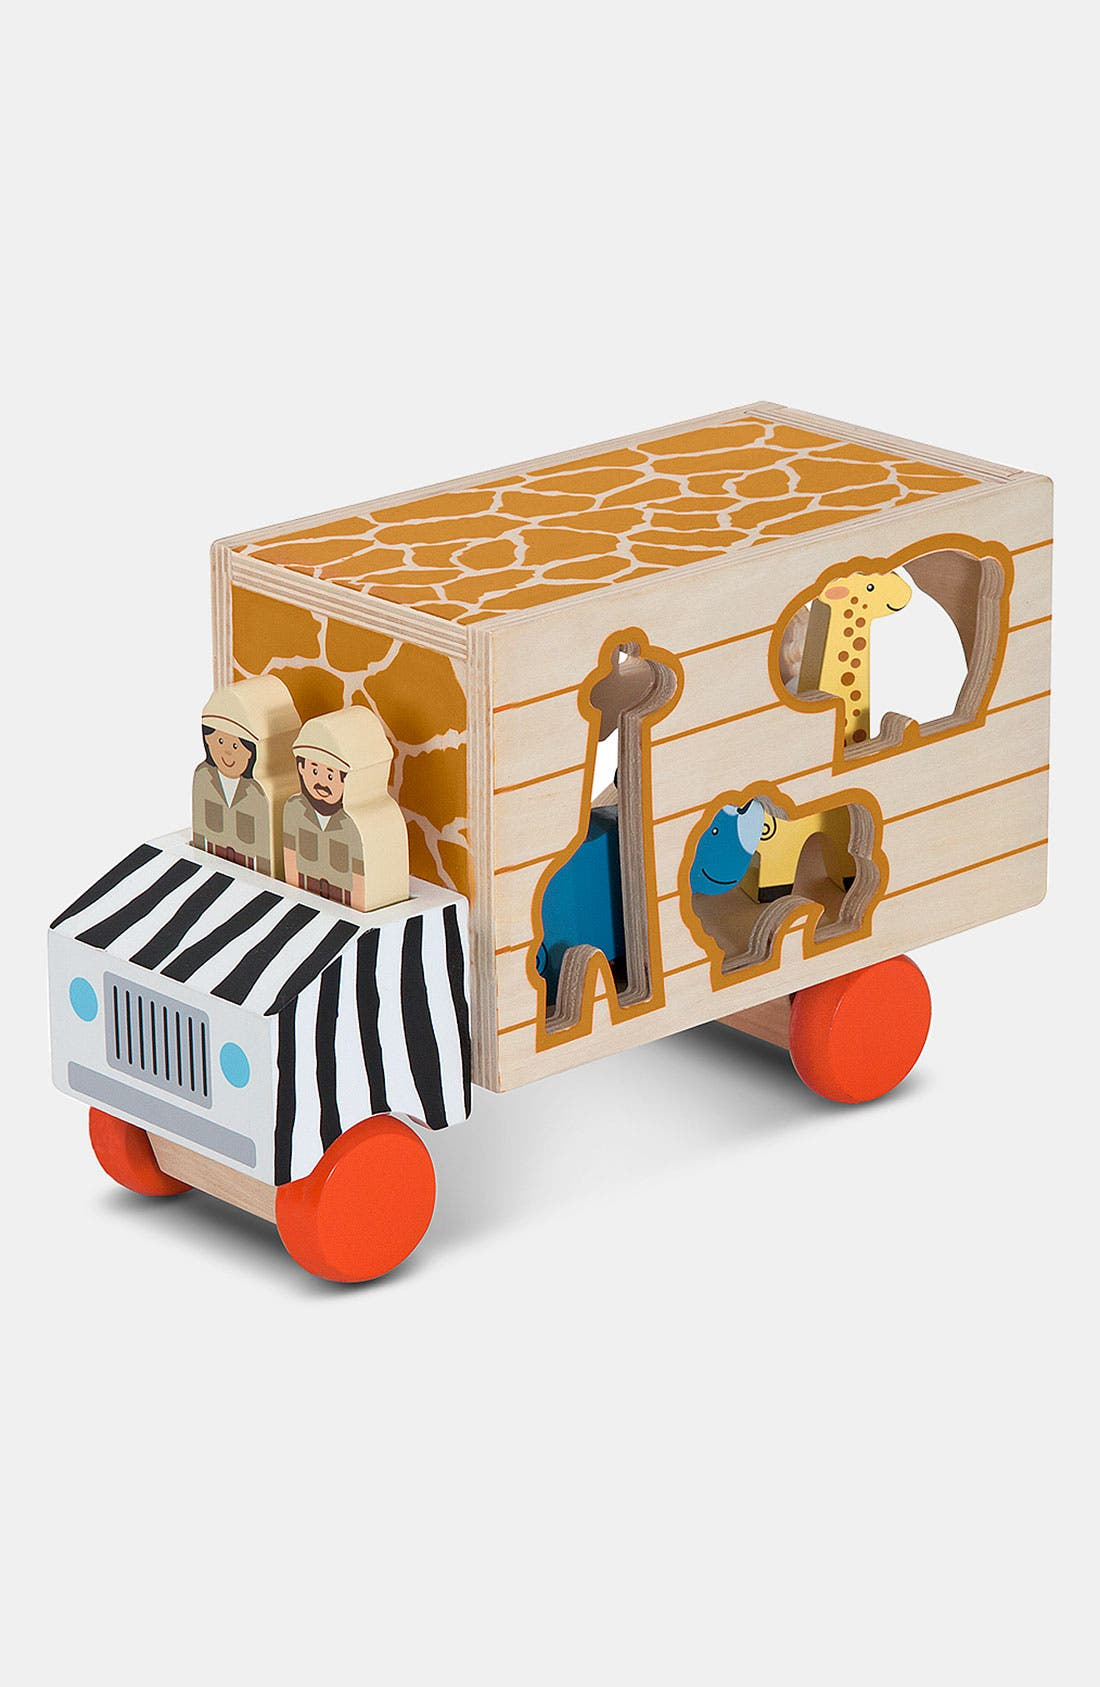 Alternate Image 1 Selected - Melissa & Doug 'Animal Rescue' Shape Sorting Wooden Truck Toy